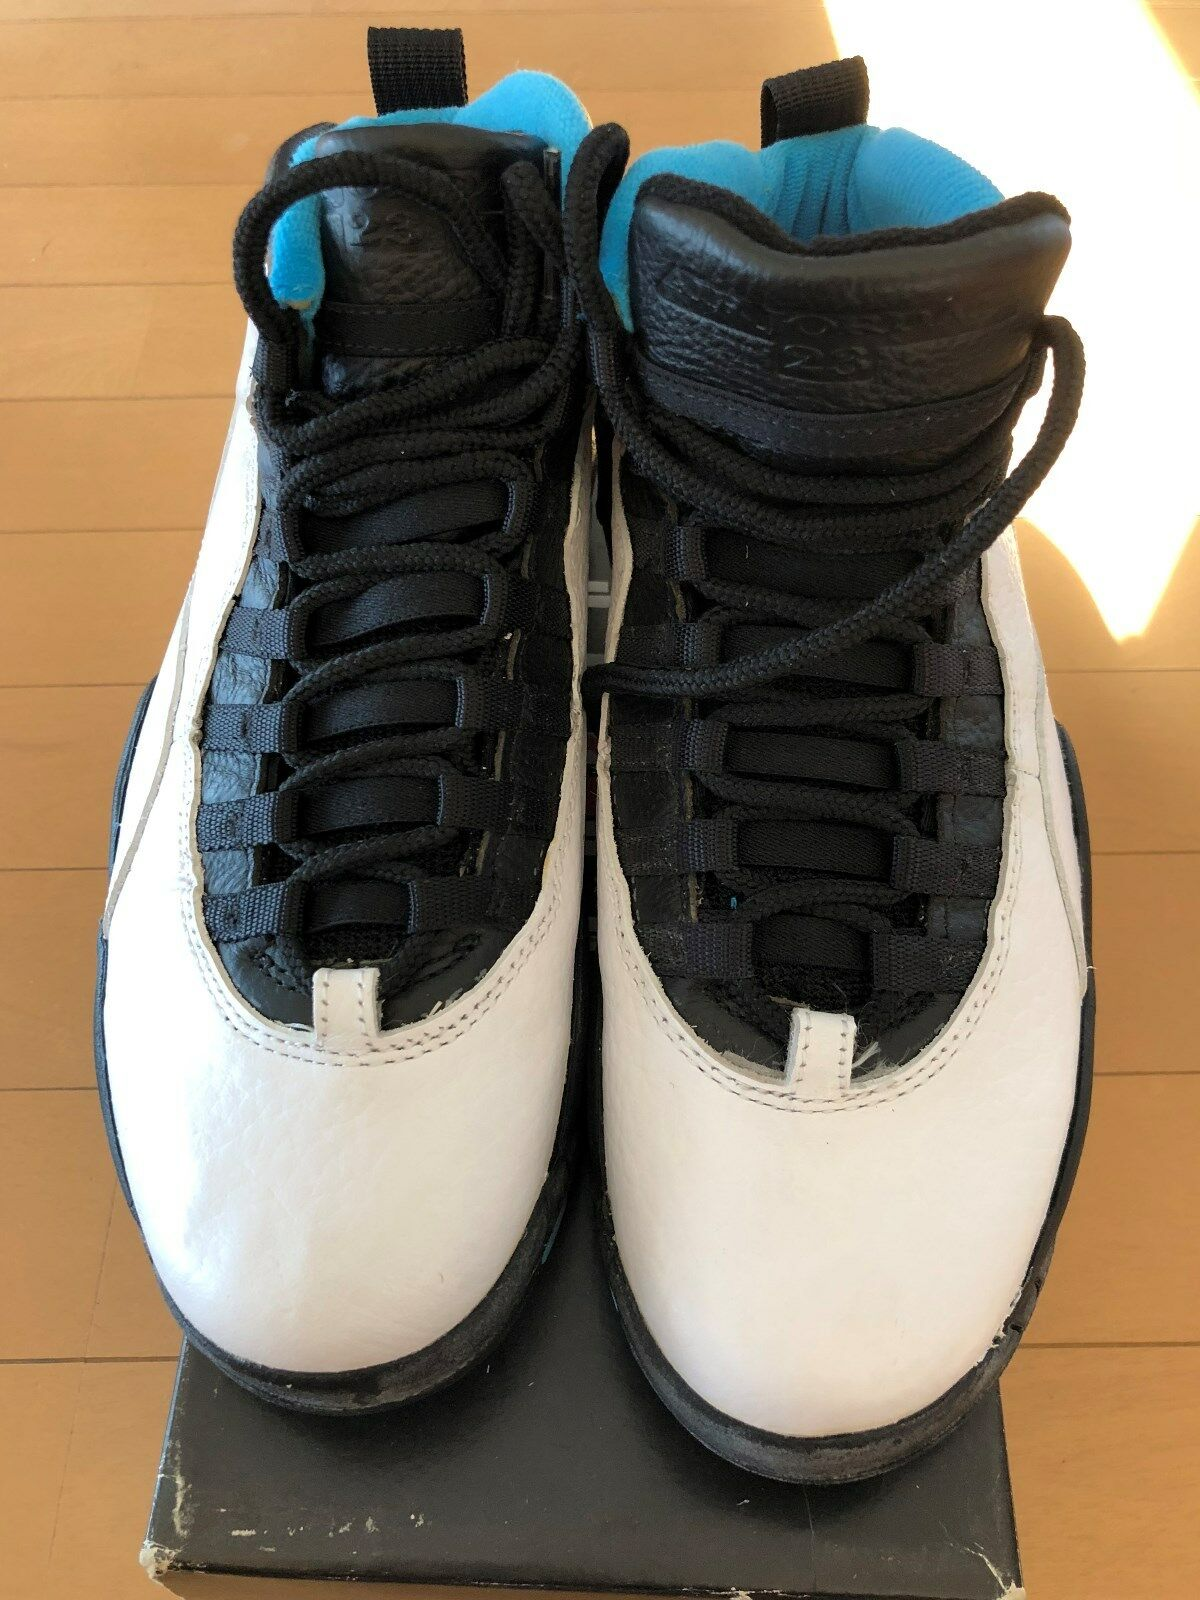 [Nike Archive] DS 1995 NIKE AIR JORDAN 10 ORIGINAL 130209-102 POWDER BLUE SZ6.5